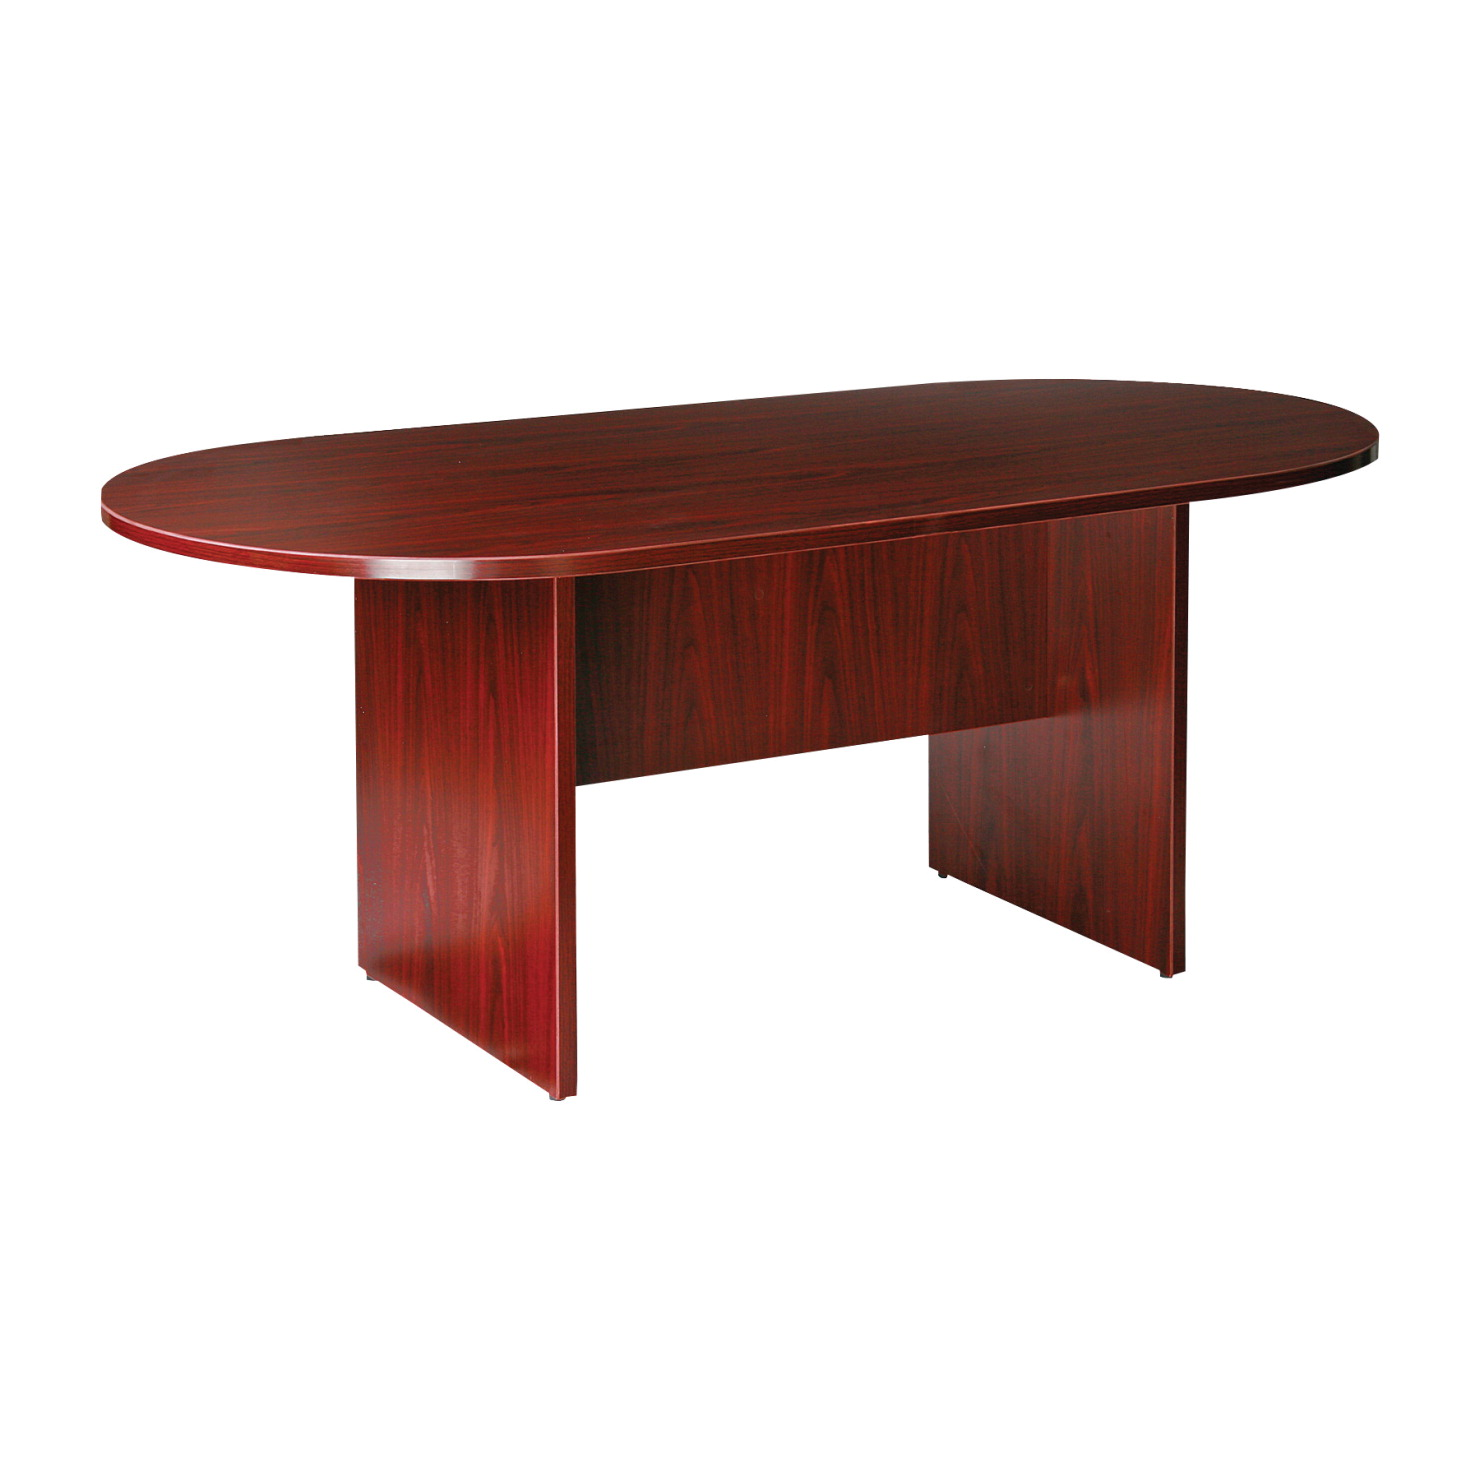 Conference Table SCHOOL SPECIALTY MARKETPLACE - 72 x 36 conference table